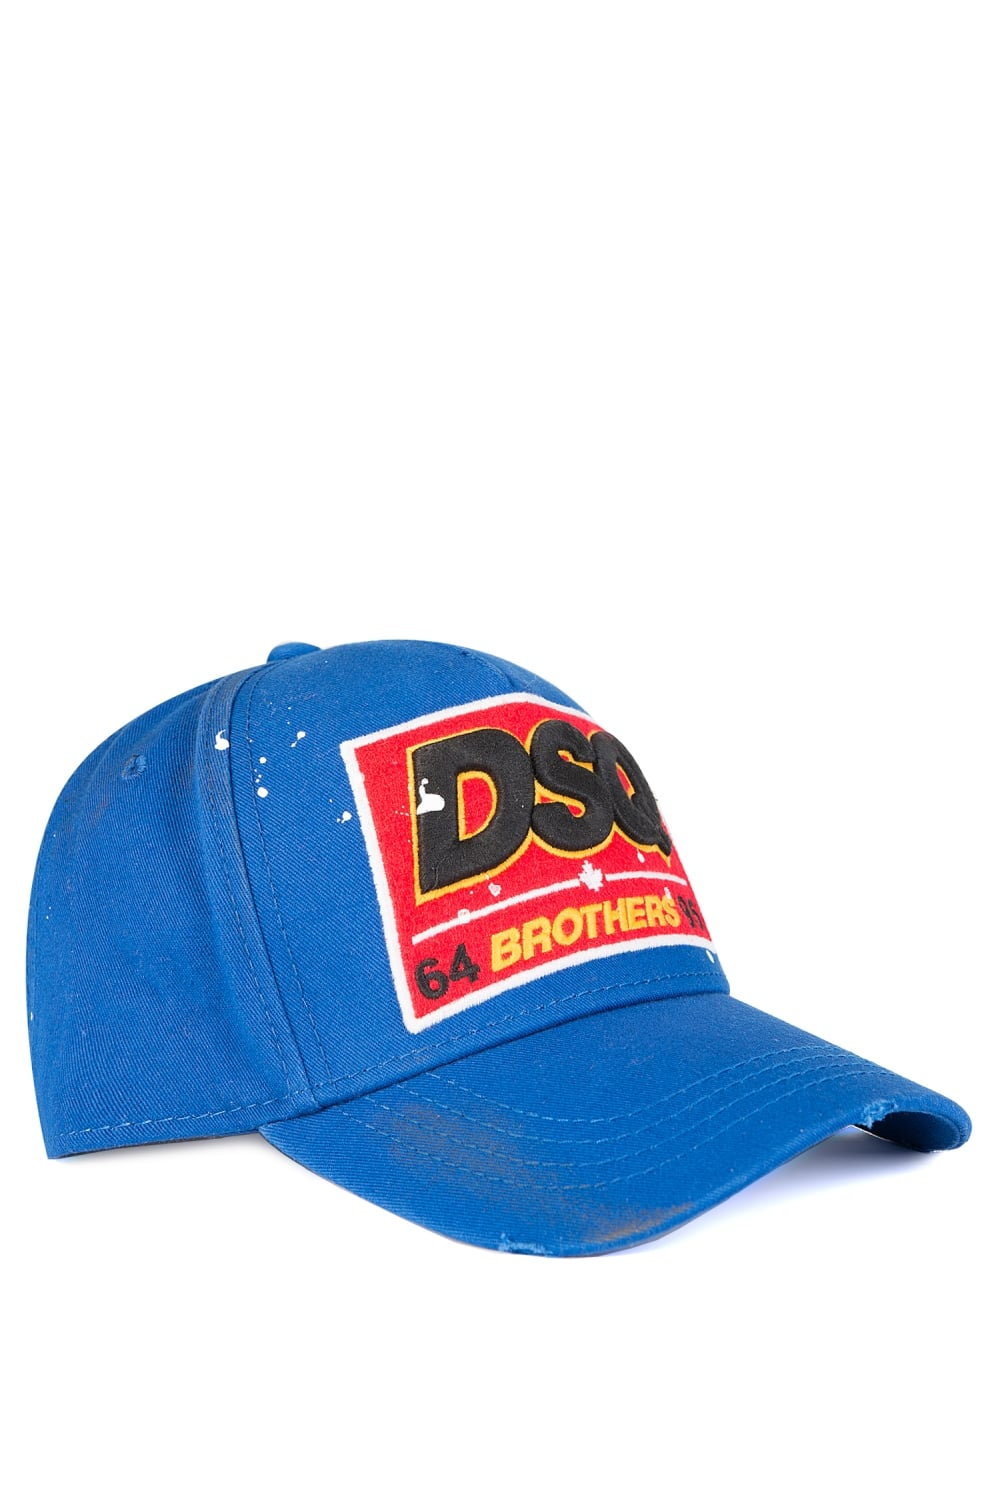 17888543a Dsquared Brothers Baseball Cap Blue